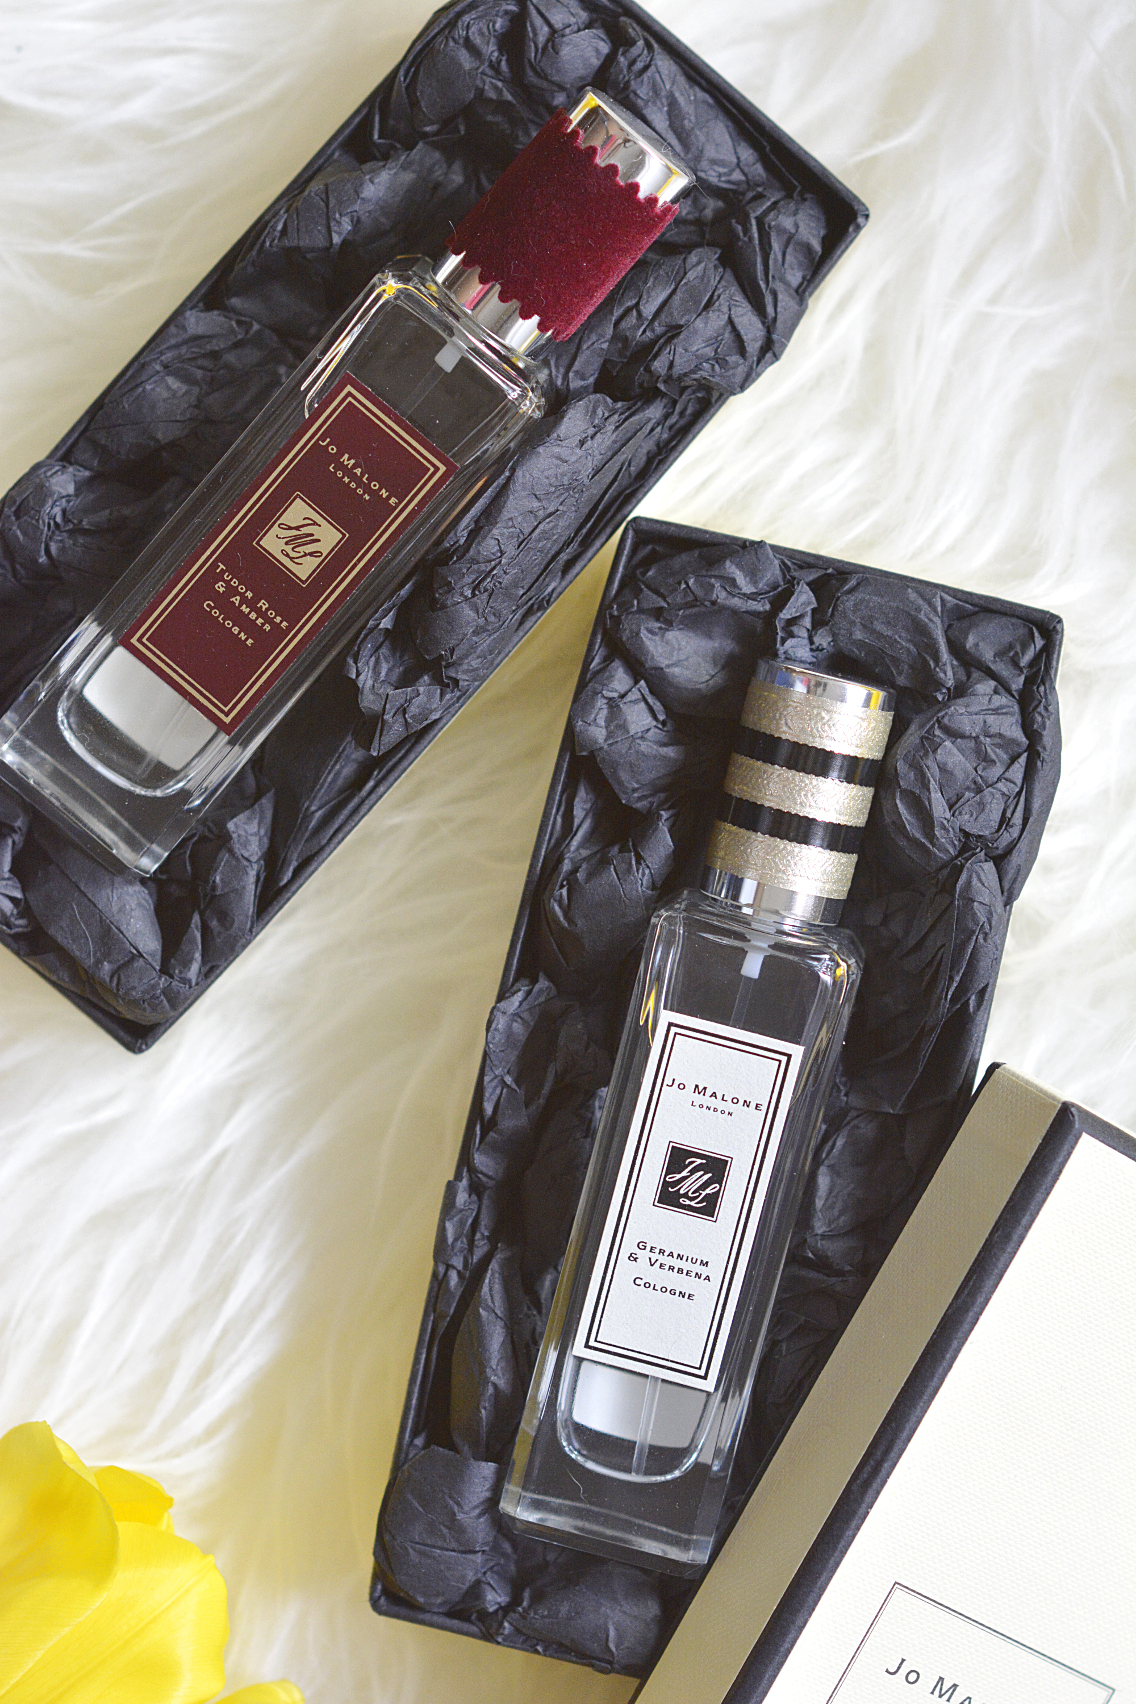 Jo Malone London Rock the Ages Cologne 2